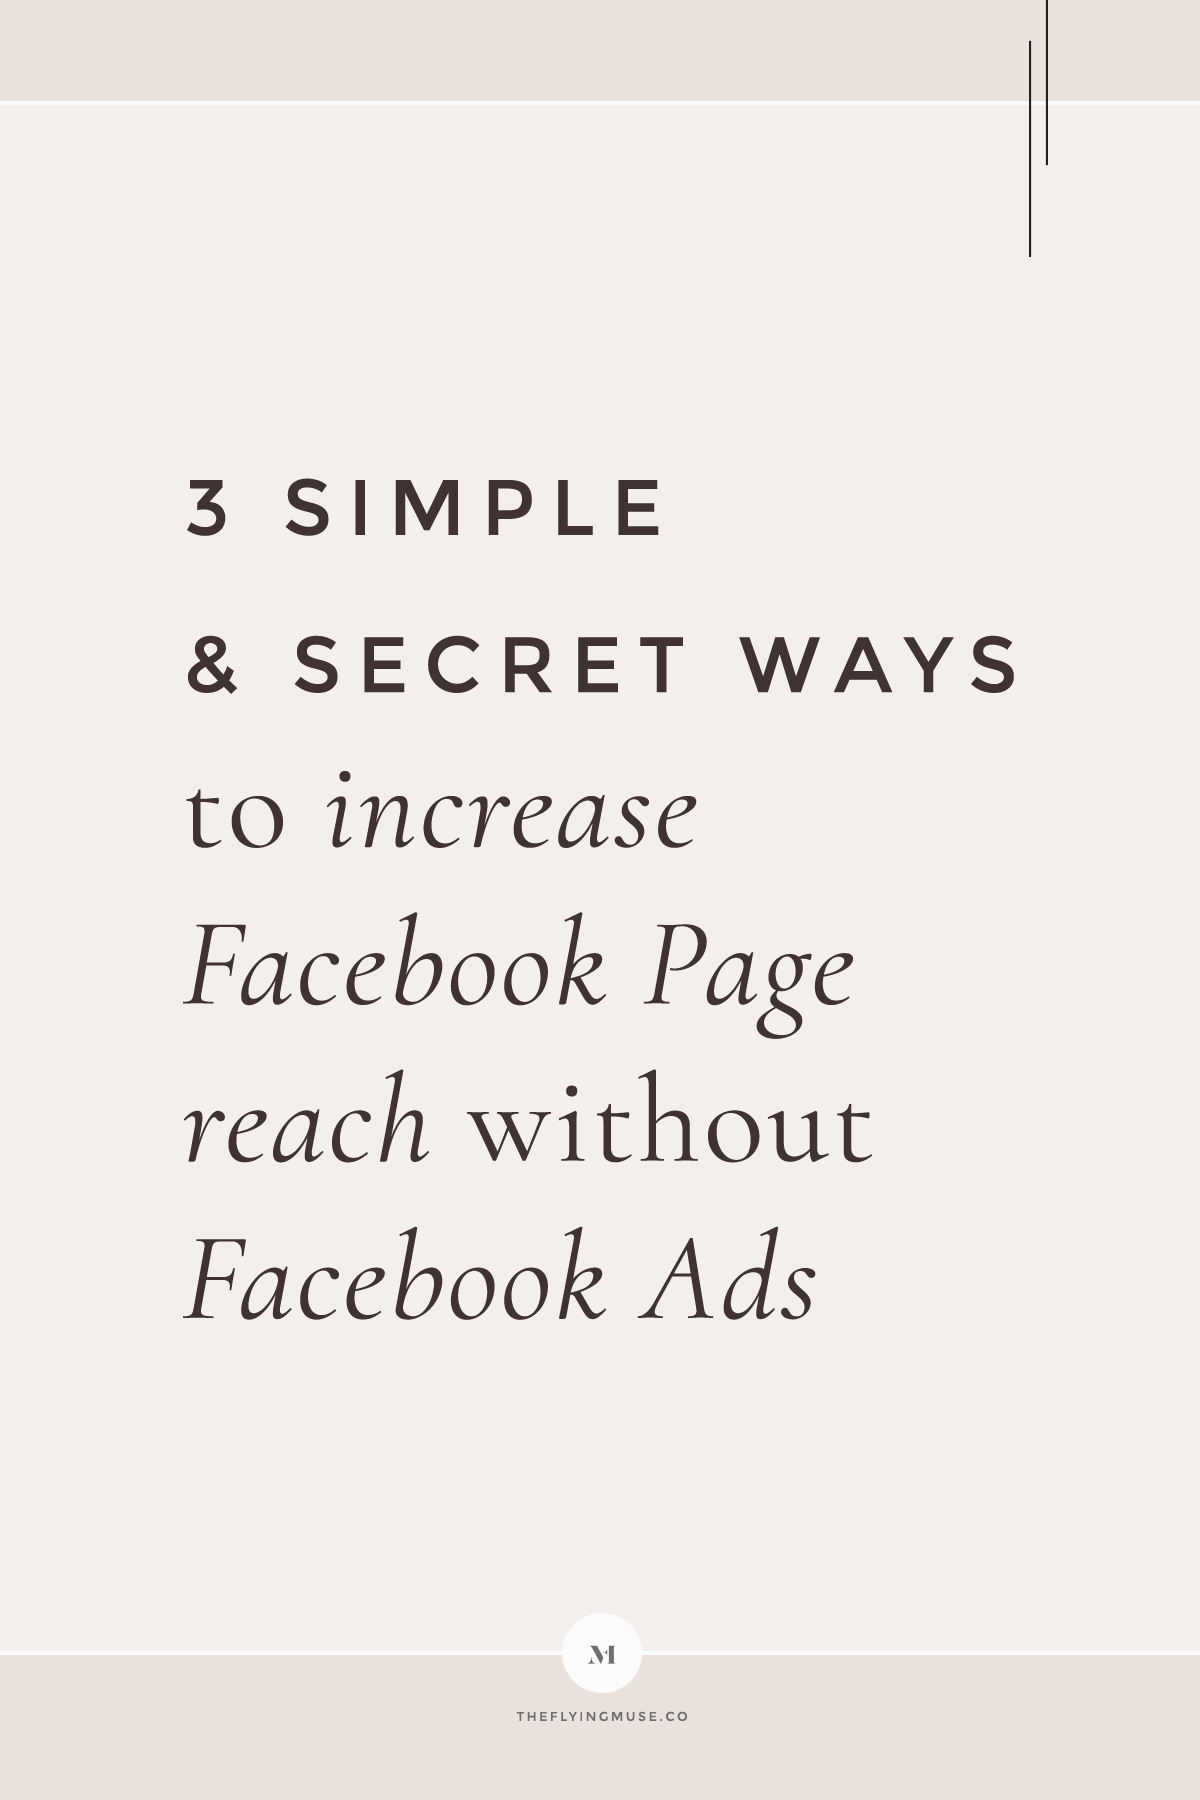 Simple & Secret Ways to increase Facebook Page Reach without Facebook Ads